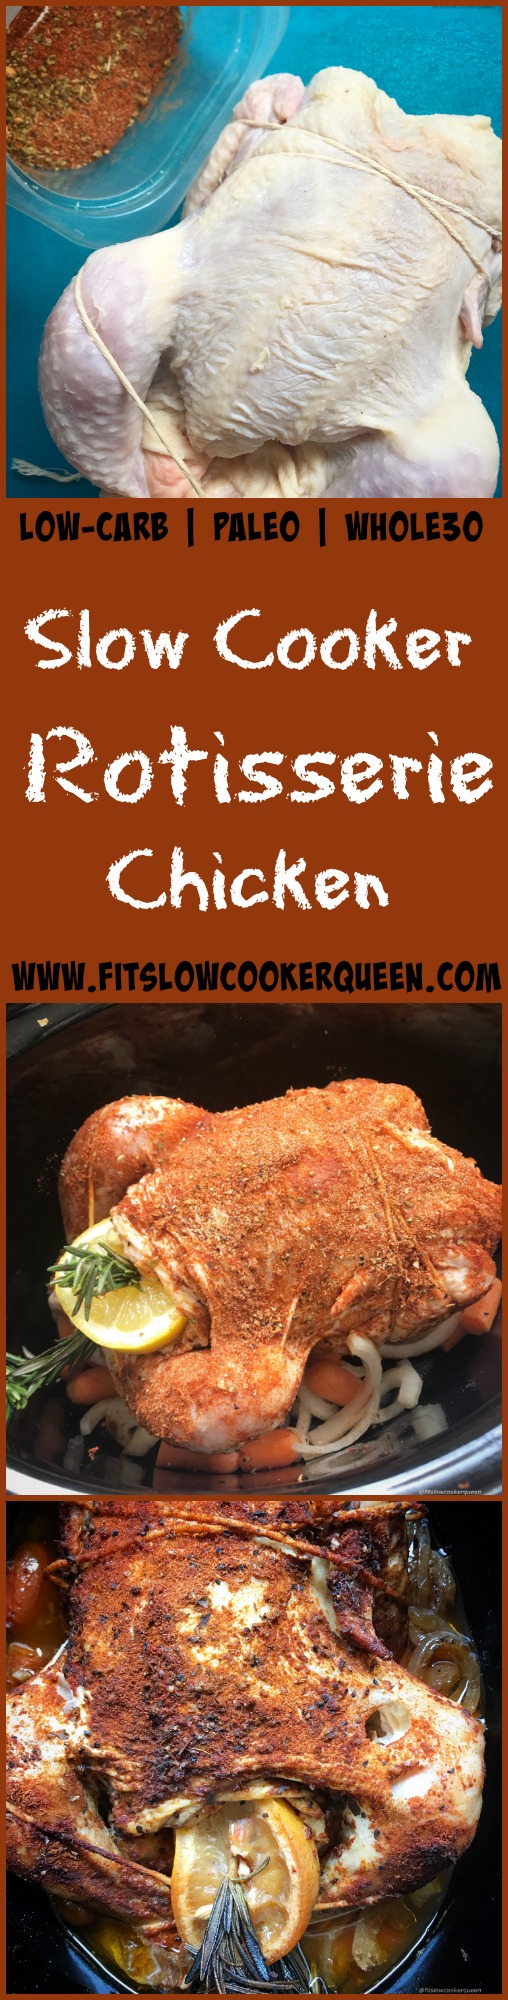 Of course a rotisserie spiced chicken can be slow cooked! A whole chicken rubbed down with a homemade rotisserie seasoning then cooked in the slow cooker produces tender, versatile meat that can be re-used in lots of recipes.